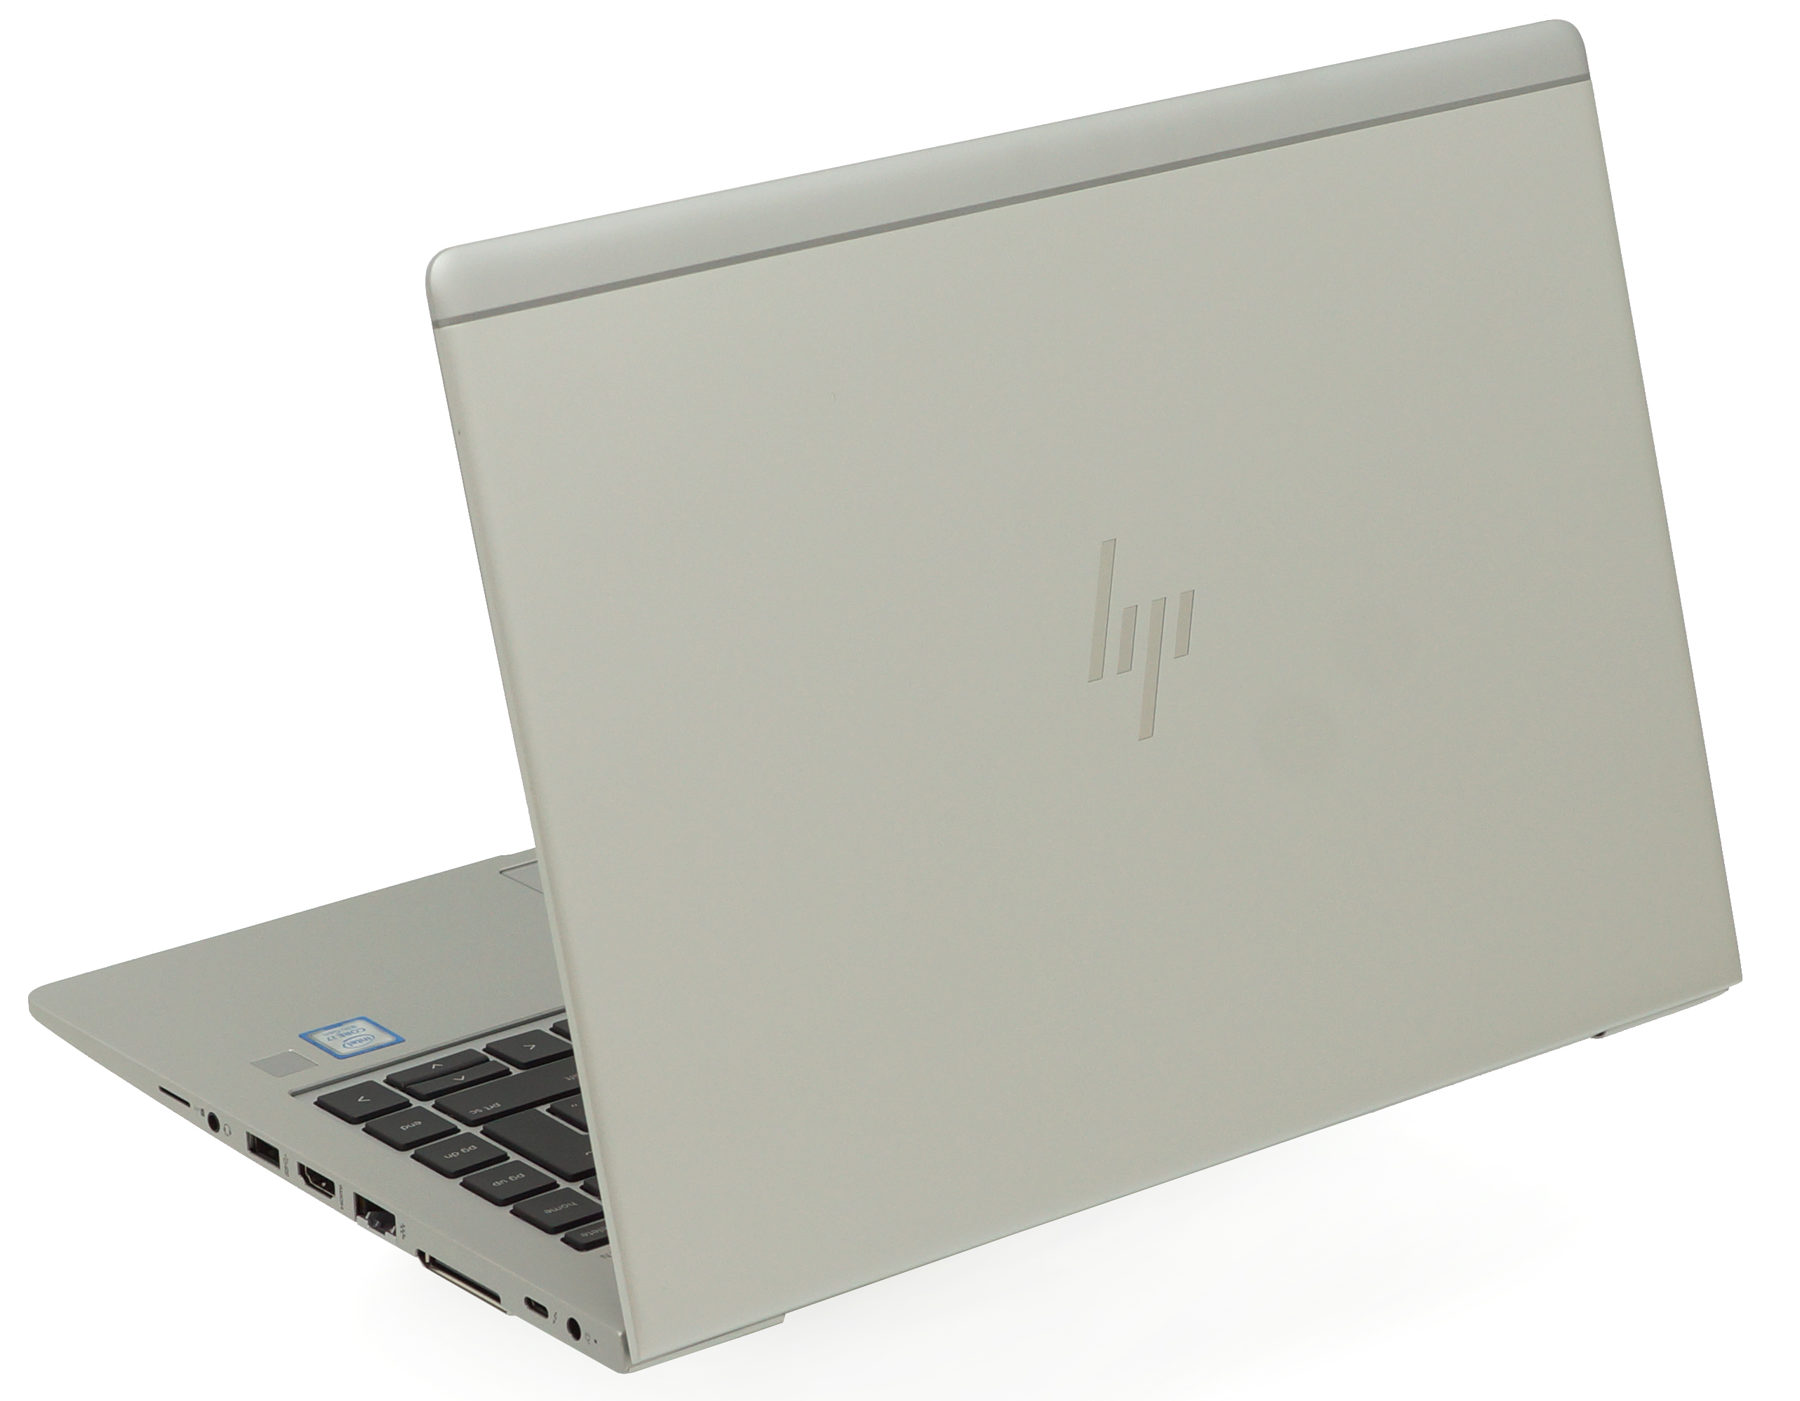 HP EliteBook 840 G5 review – exquisite build quality at exquisite price